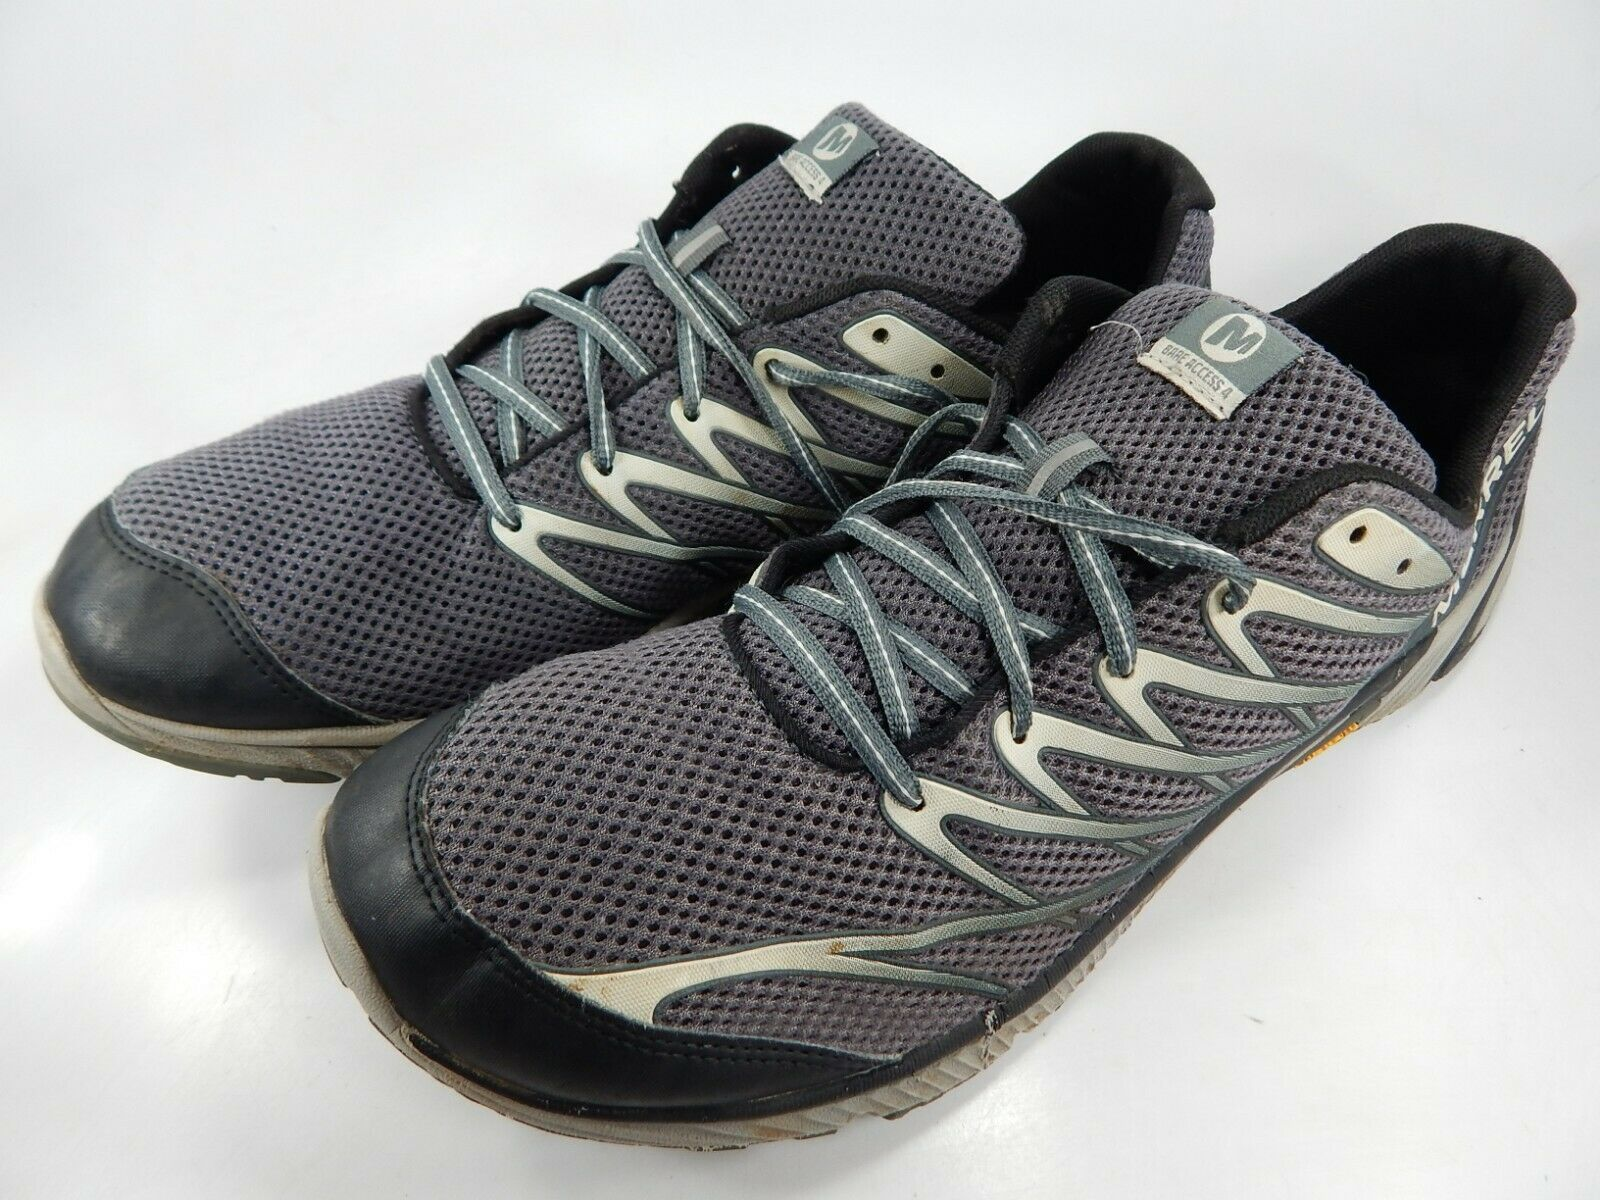 Merrell Bare Accès 4 Taille US 15 M (D) Eu 50 Hommes Trail Running Chaussures